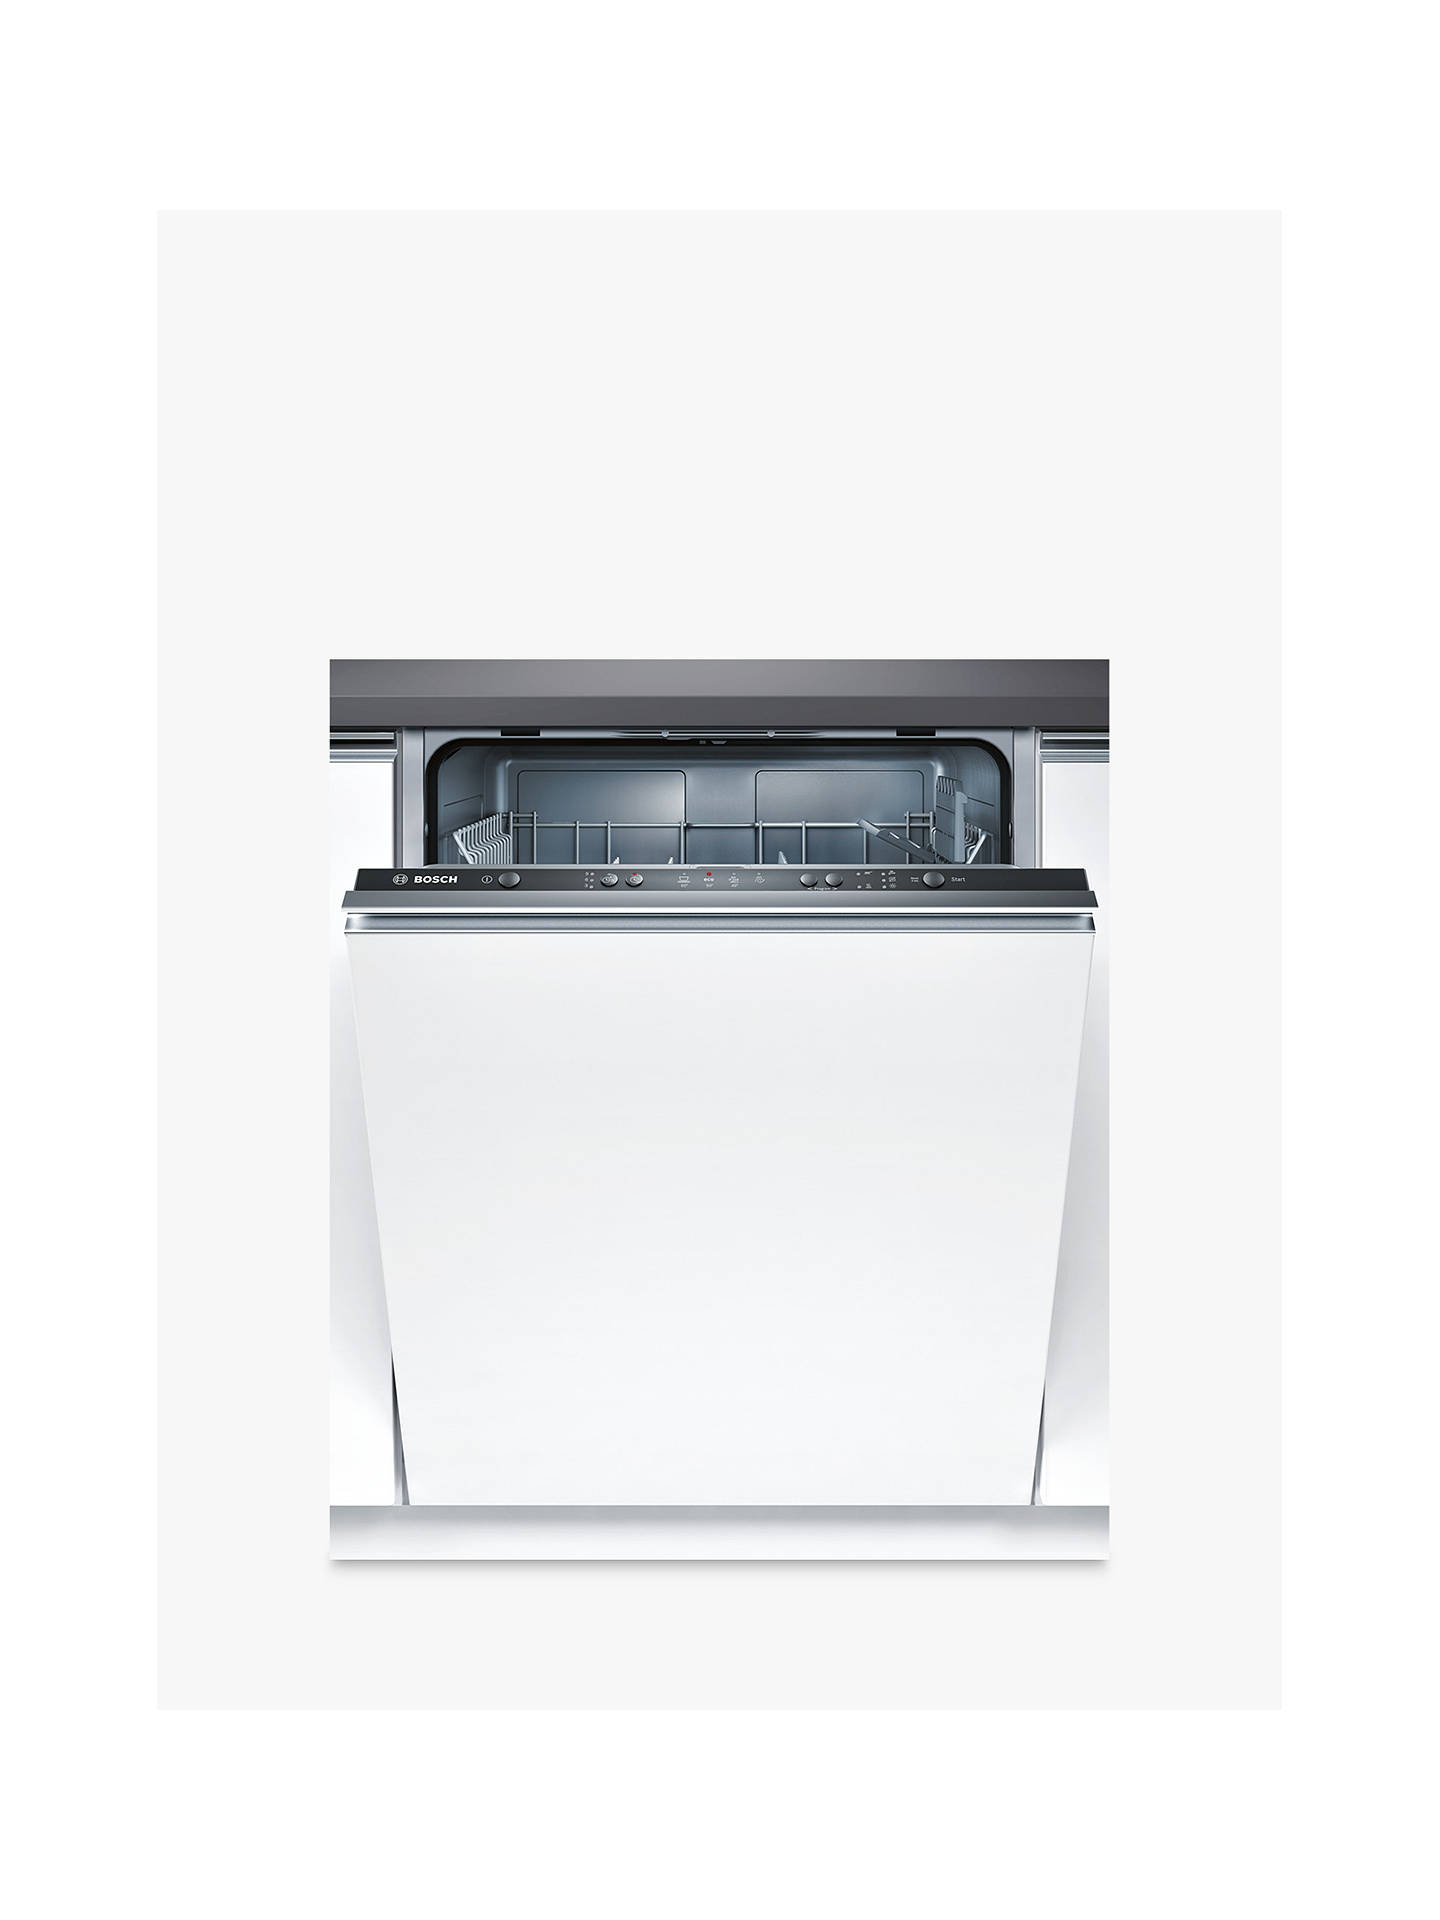 BuyBosch SMV40C30GB Fully Integrated Dishwasher Online at johnlewis.com